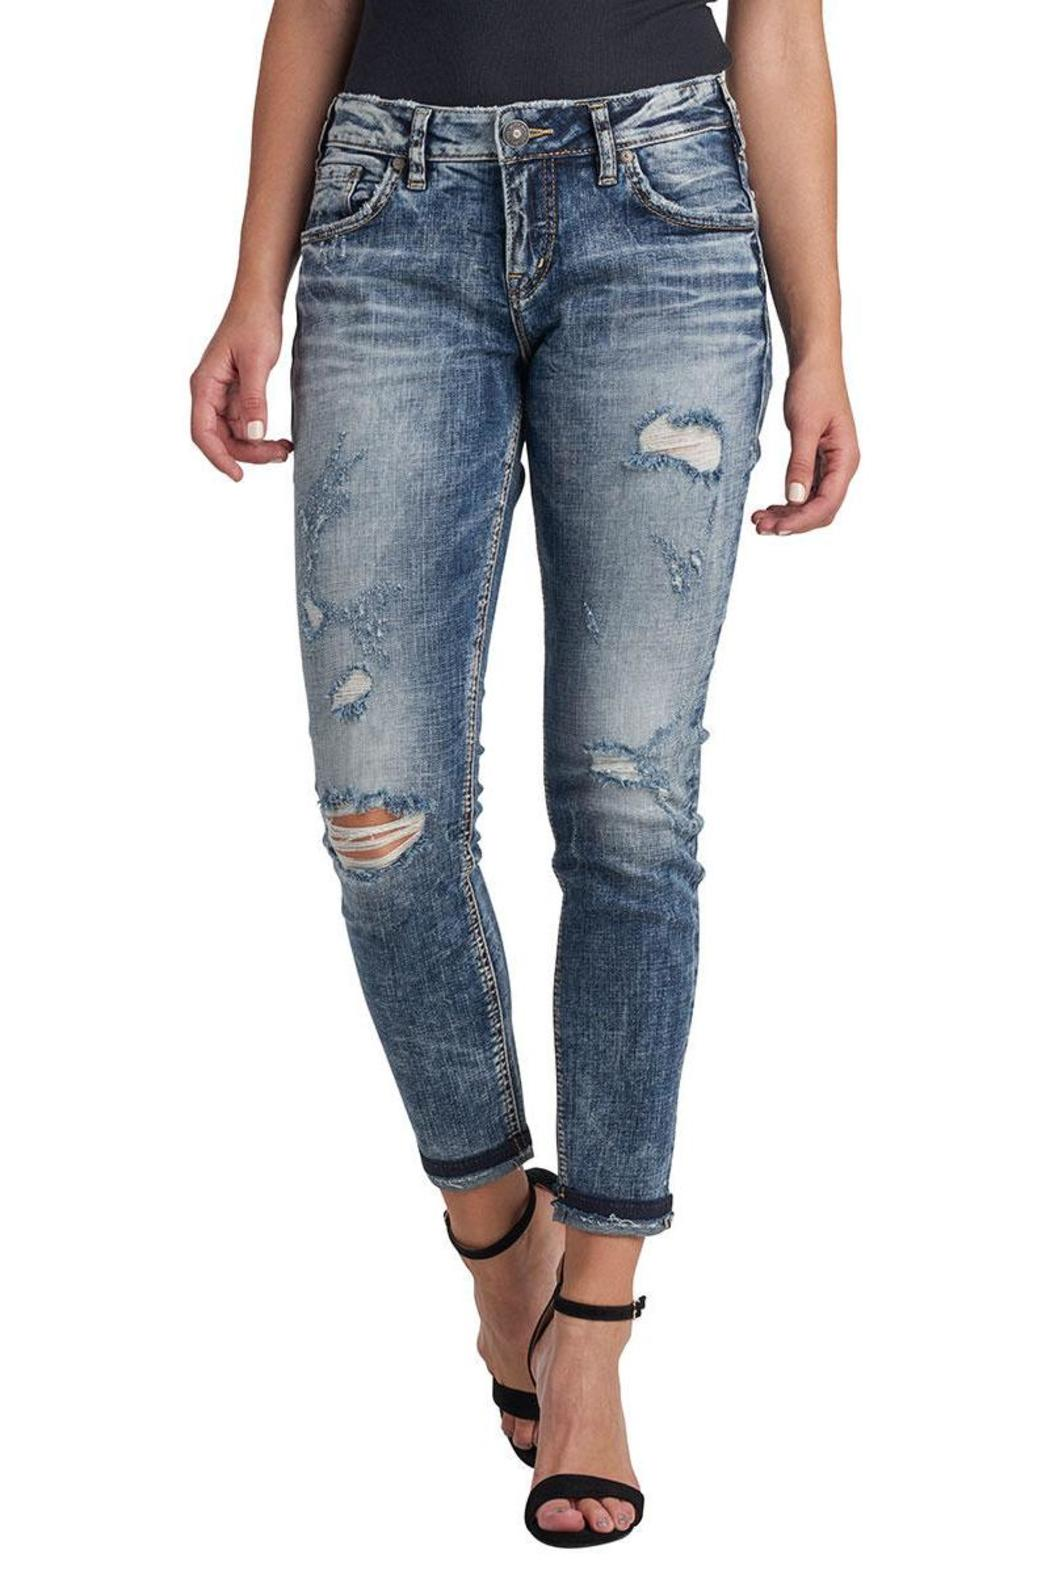 Silver Jeans Co. Distressed Crop Jeans - Main Image